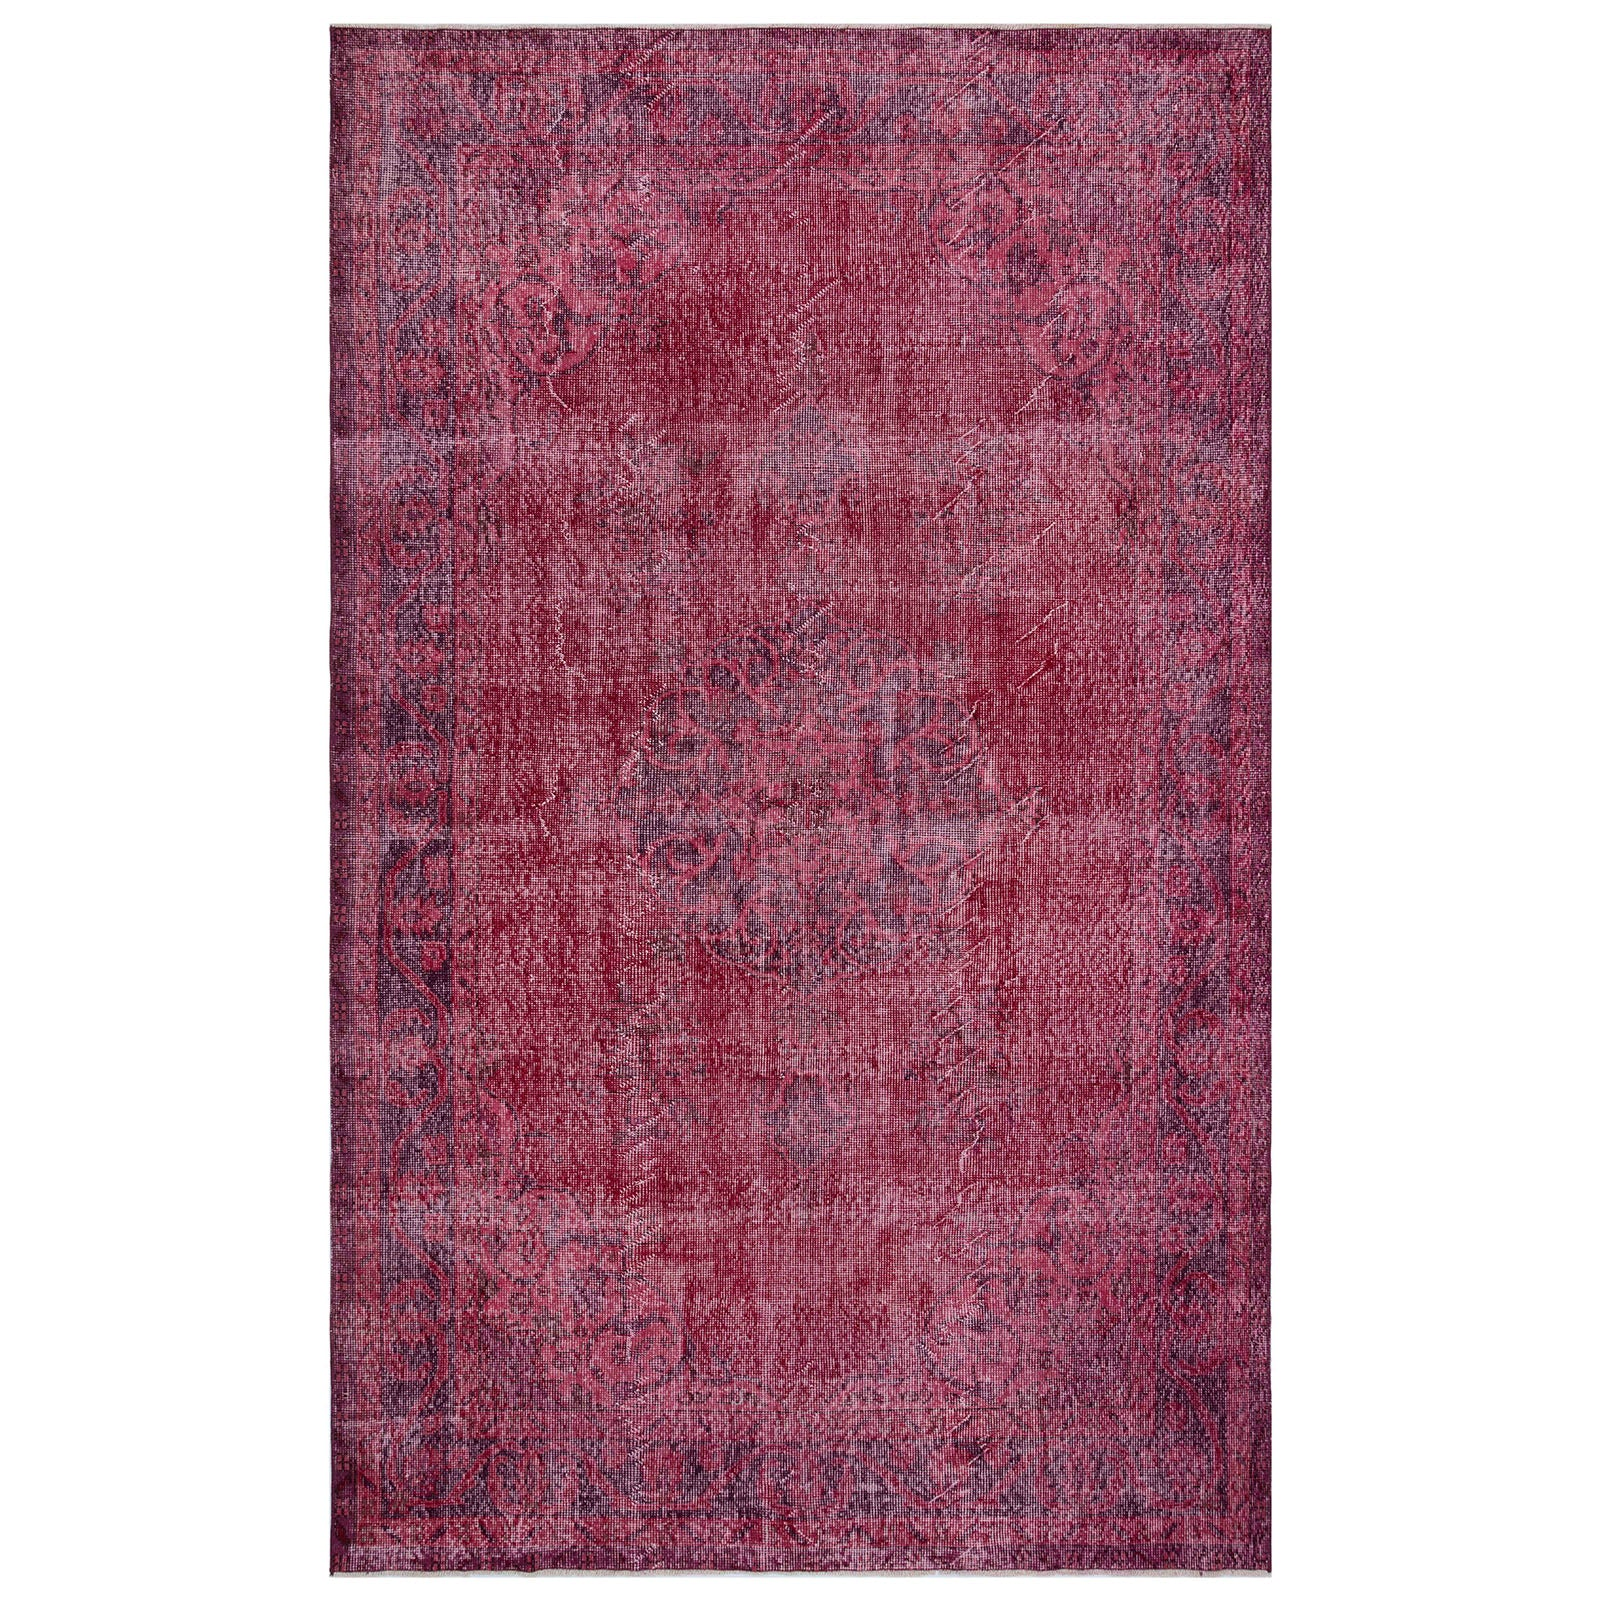 Hali 183X293  CM Bursa Handmade over dyed rug 1699